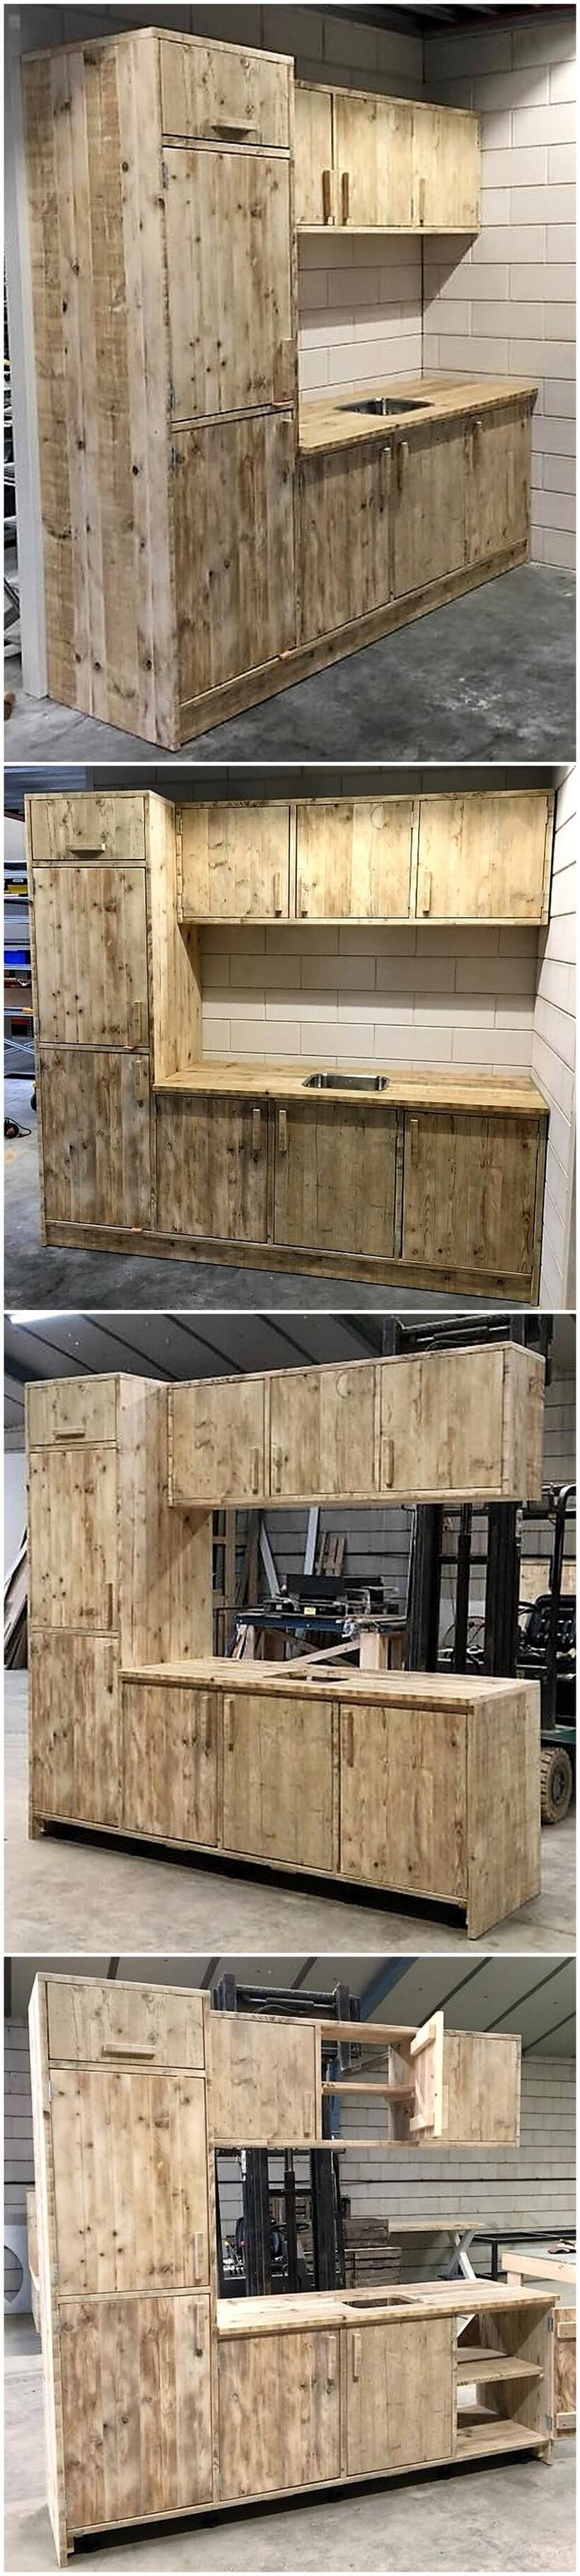 Awesome pallet reusing ideas that bring trash back to life for Kitchen units made from pallets